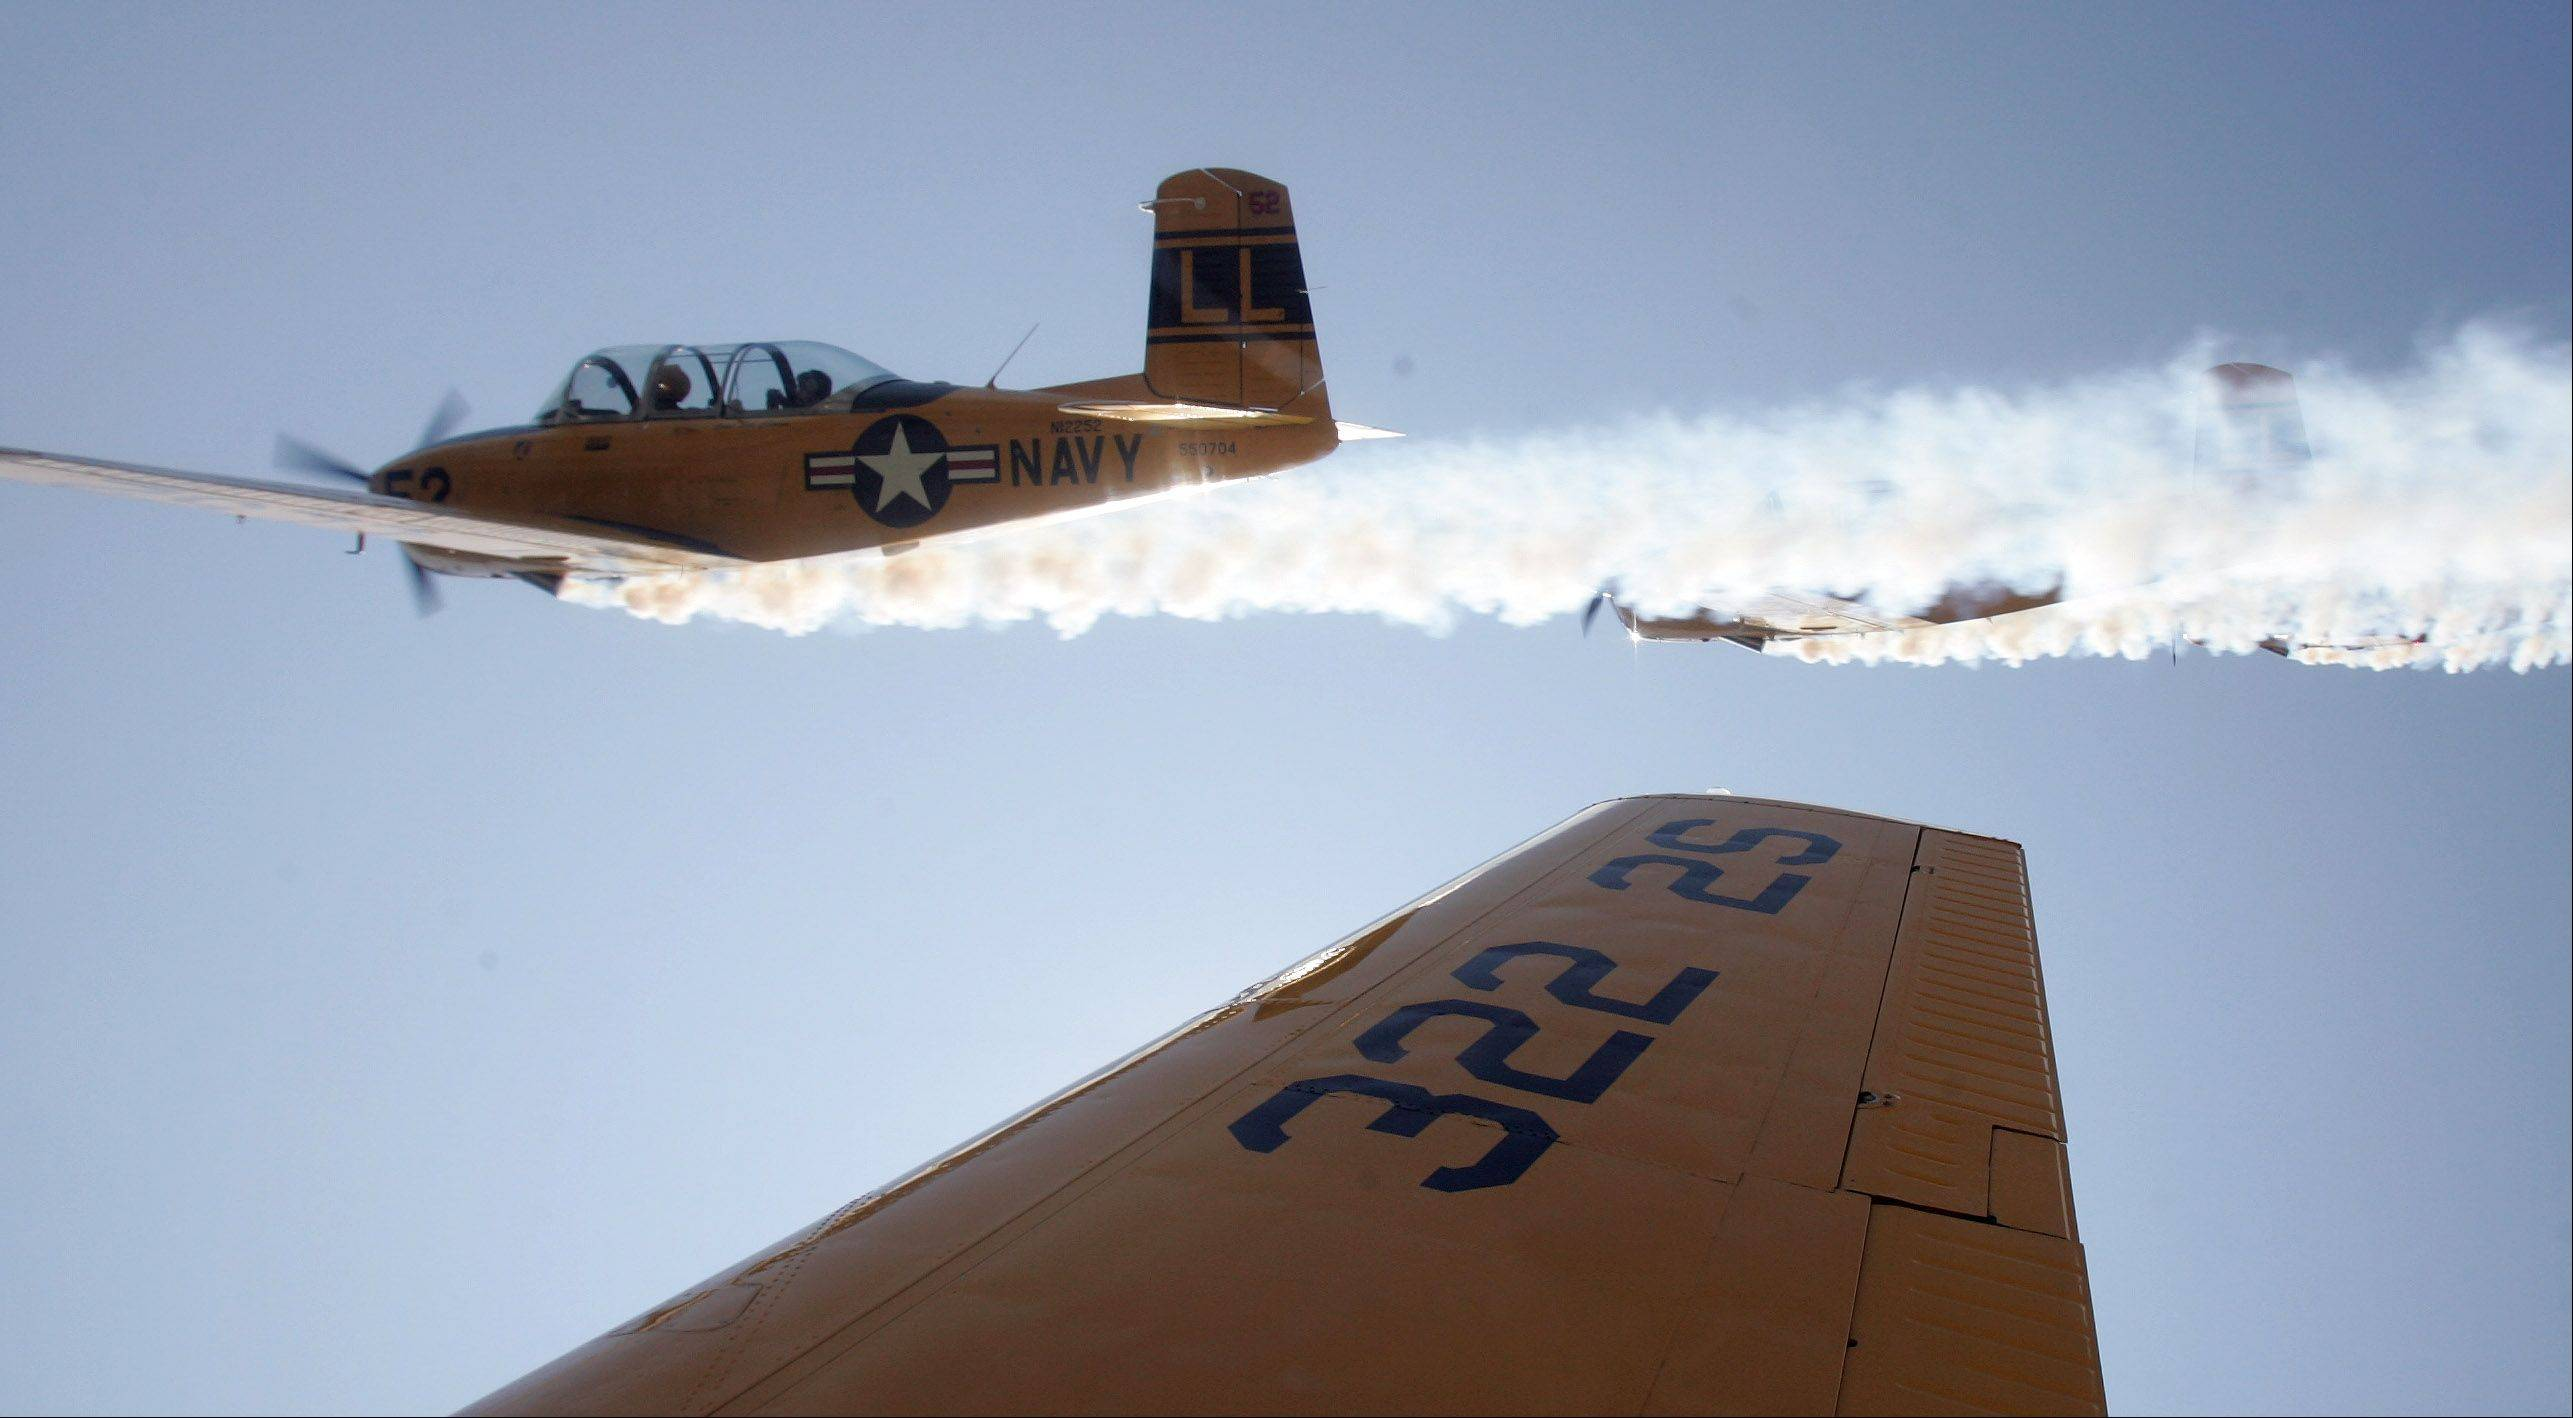 The Lima Lima Flight Team will be part of the annual Chicago Air and Water Show this weekend.